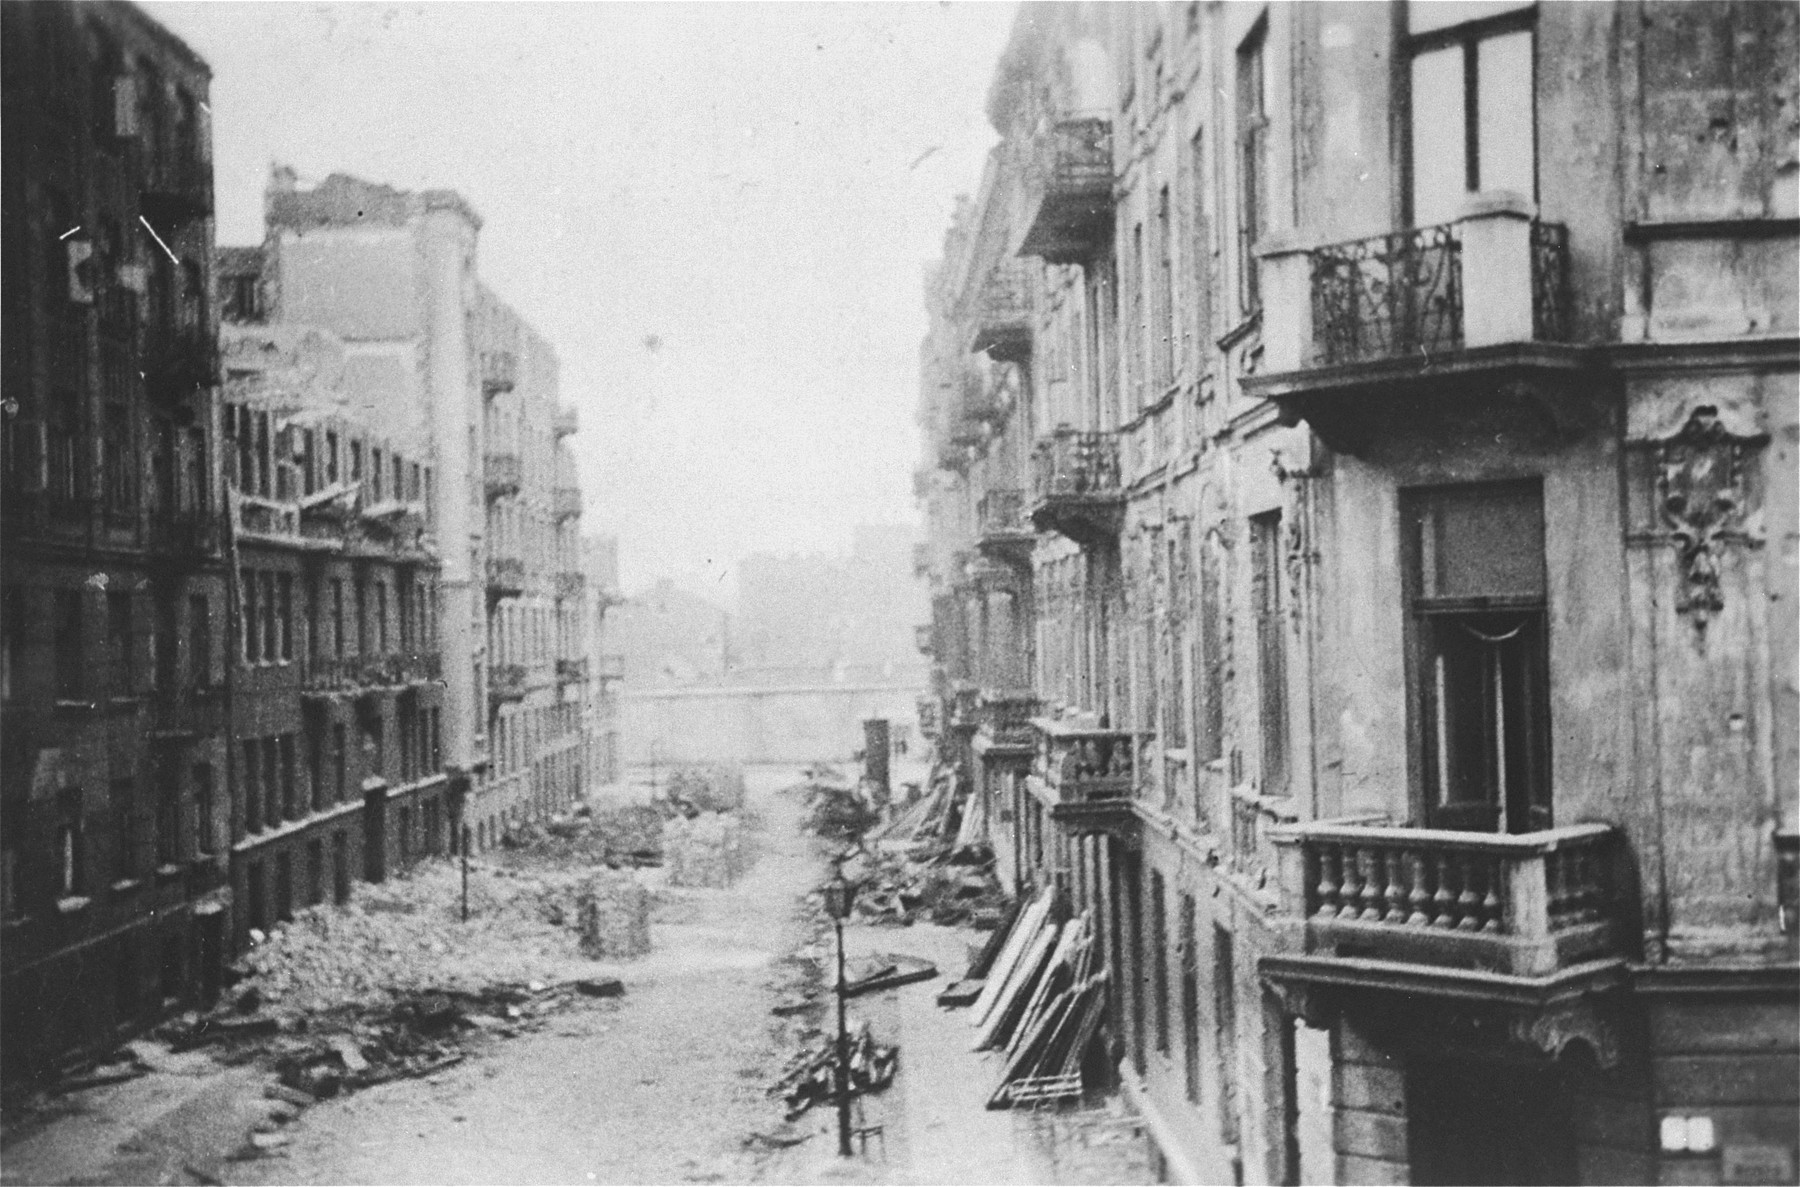 A debris filled street in the Warsaw ghetto, photographed during the suppression of the uprising by the SS.